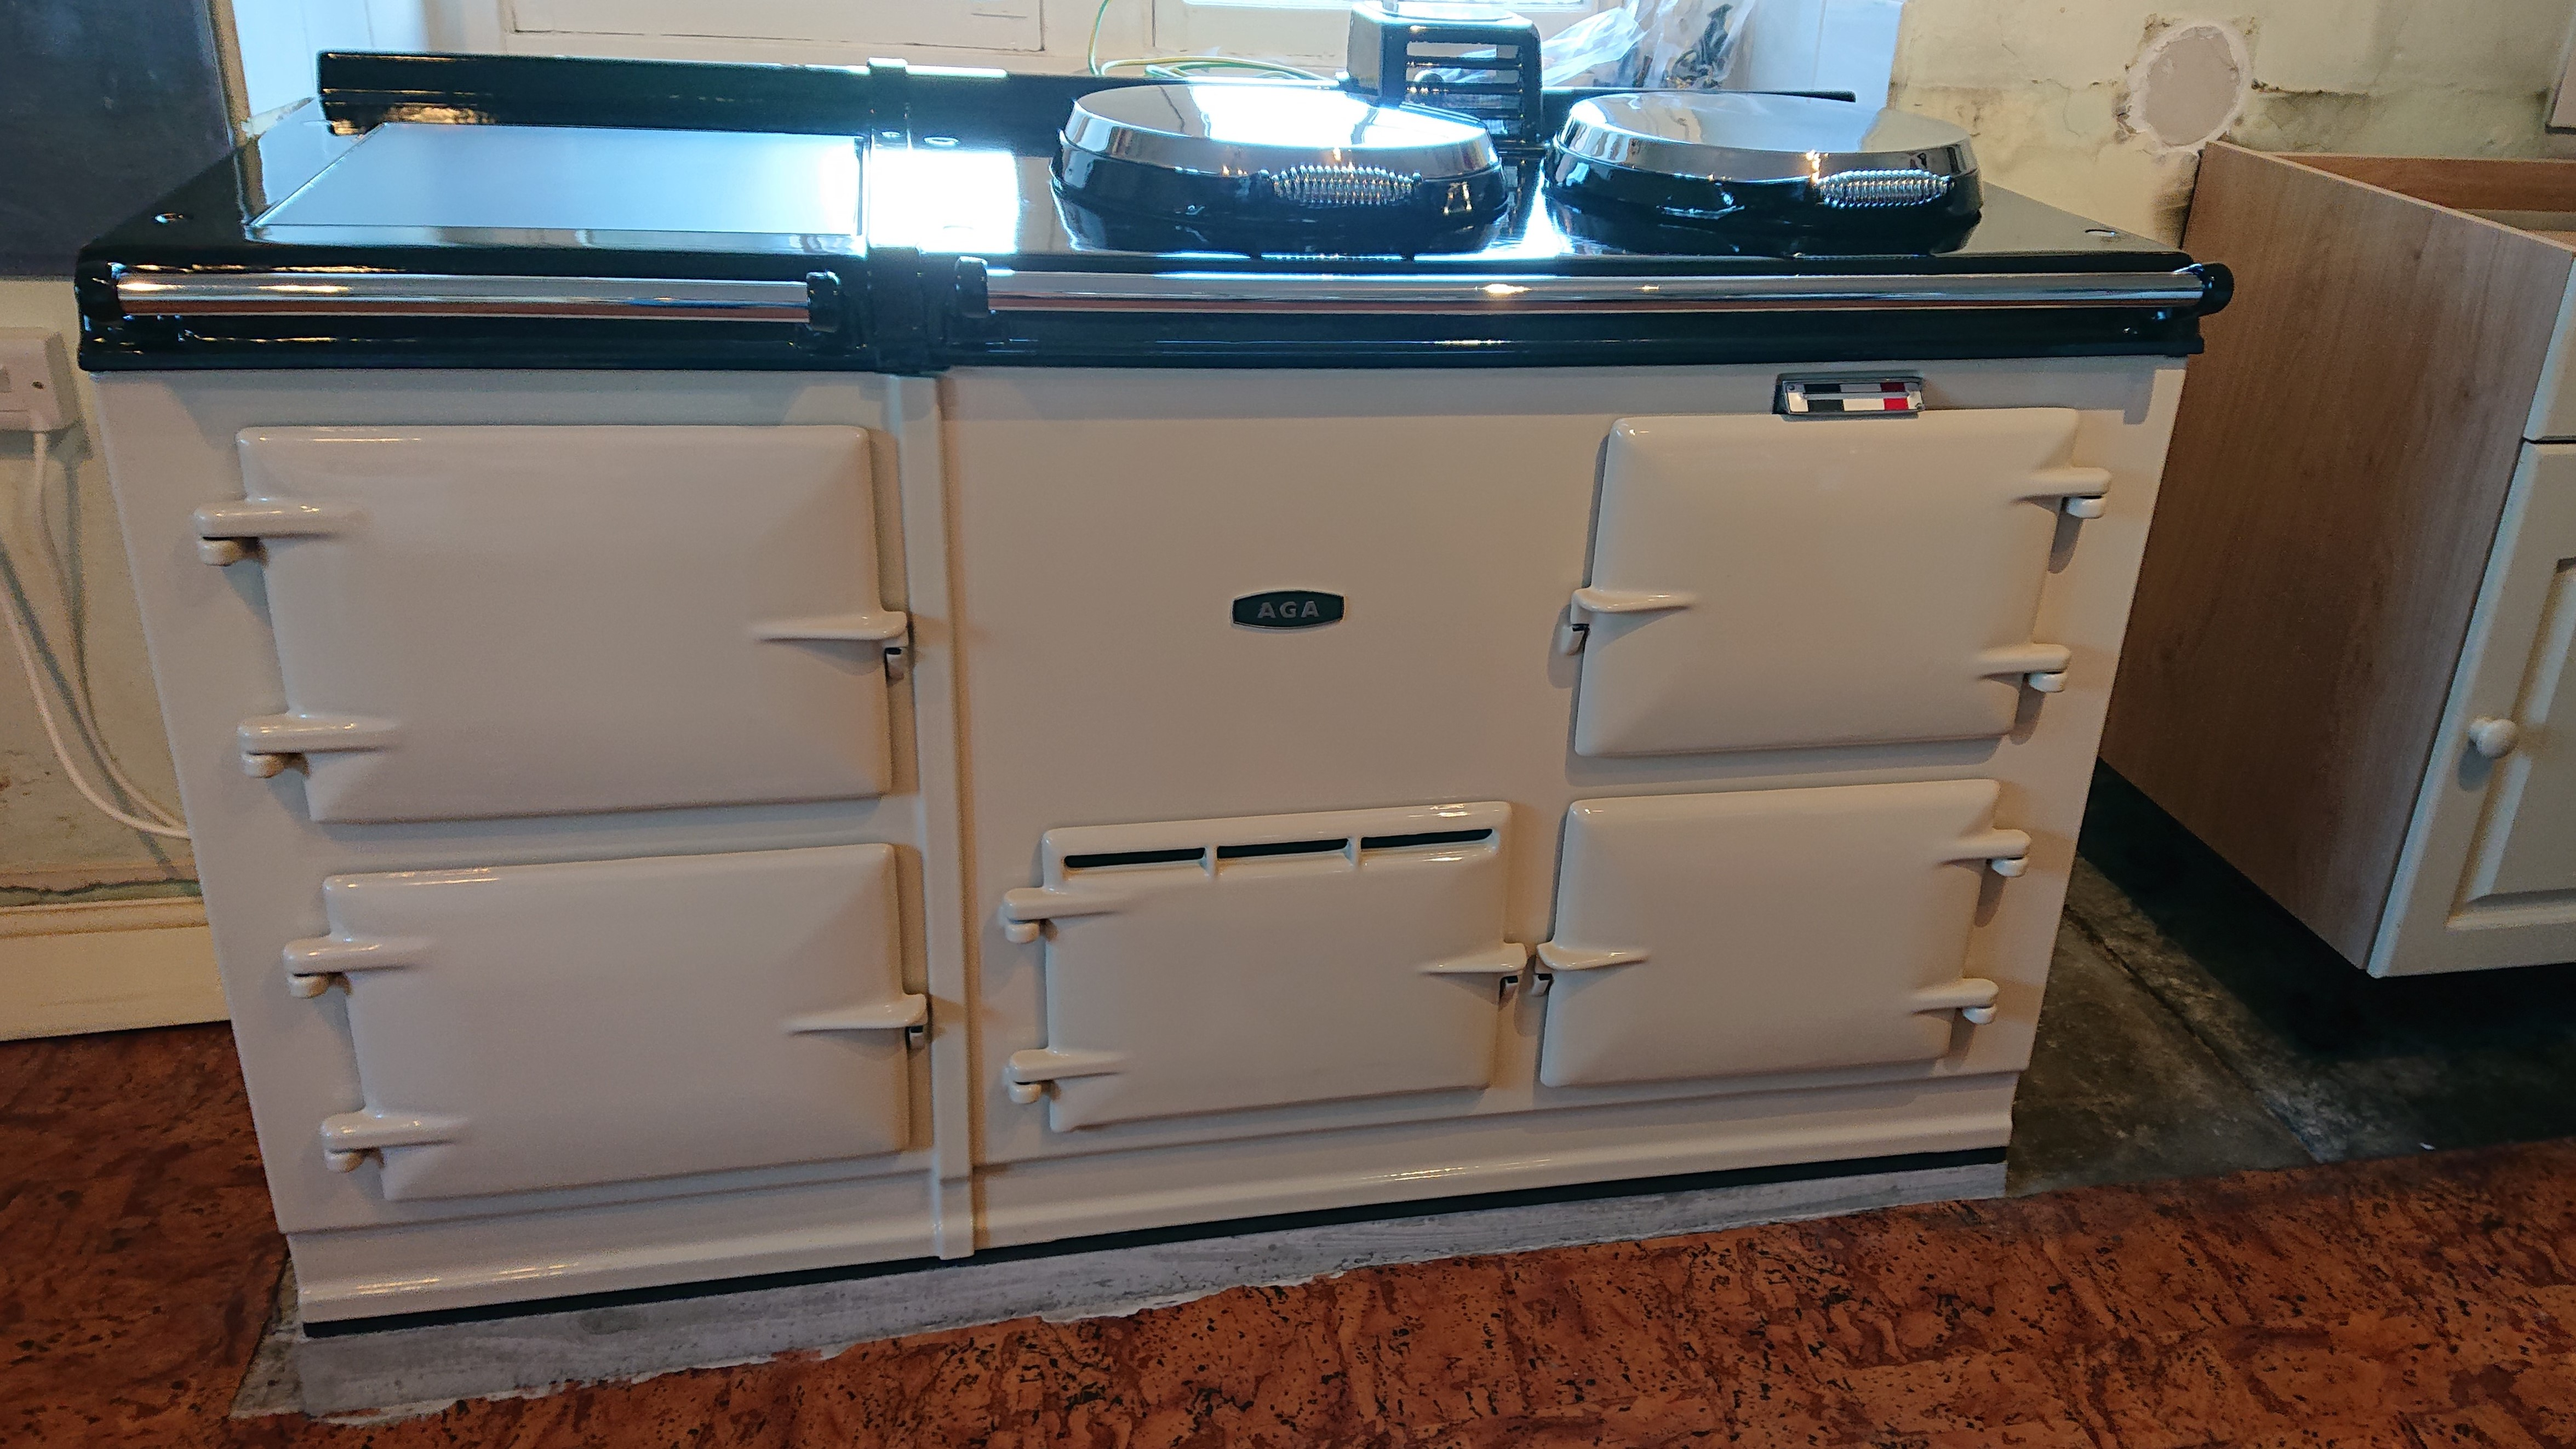 <p>4 Oven Post 74 Aga Re-enamelled in Cream, Electric</p><p>Installed in The Mendips, Somerset</p>